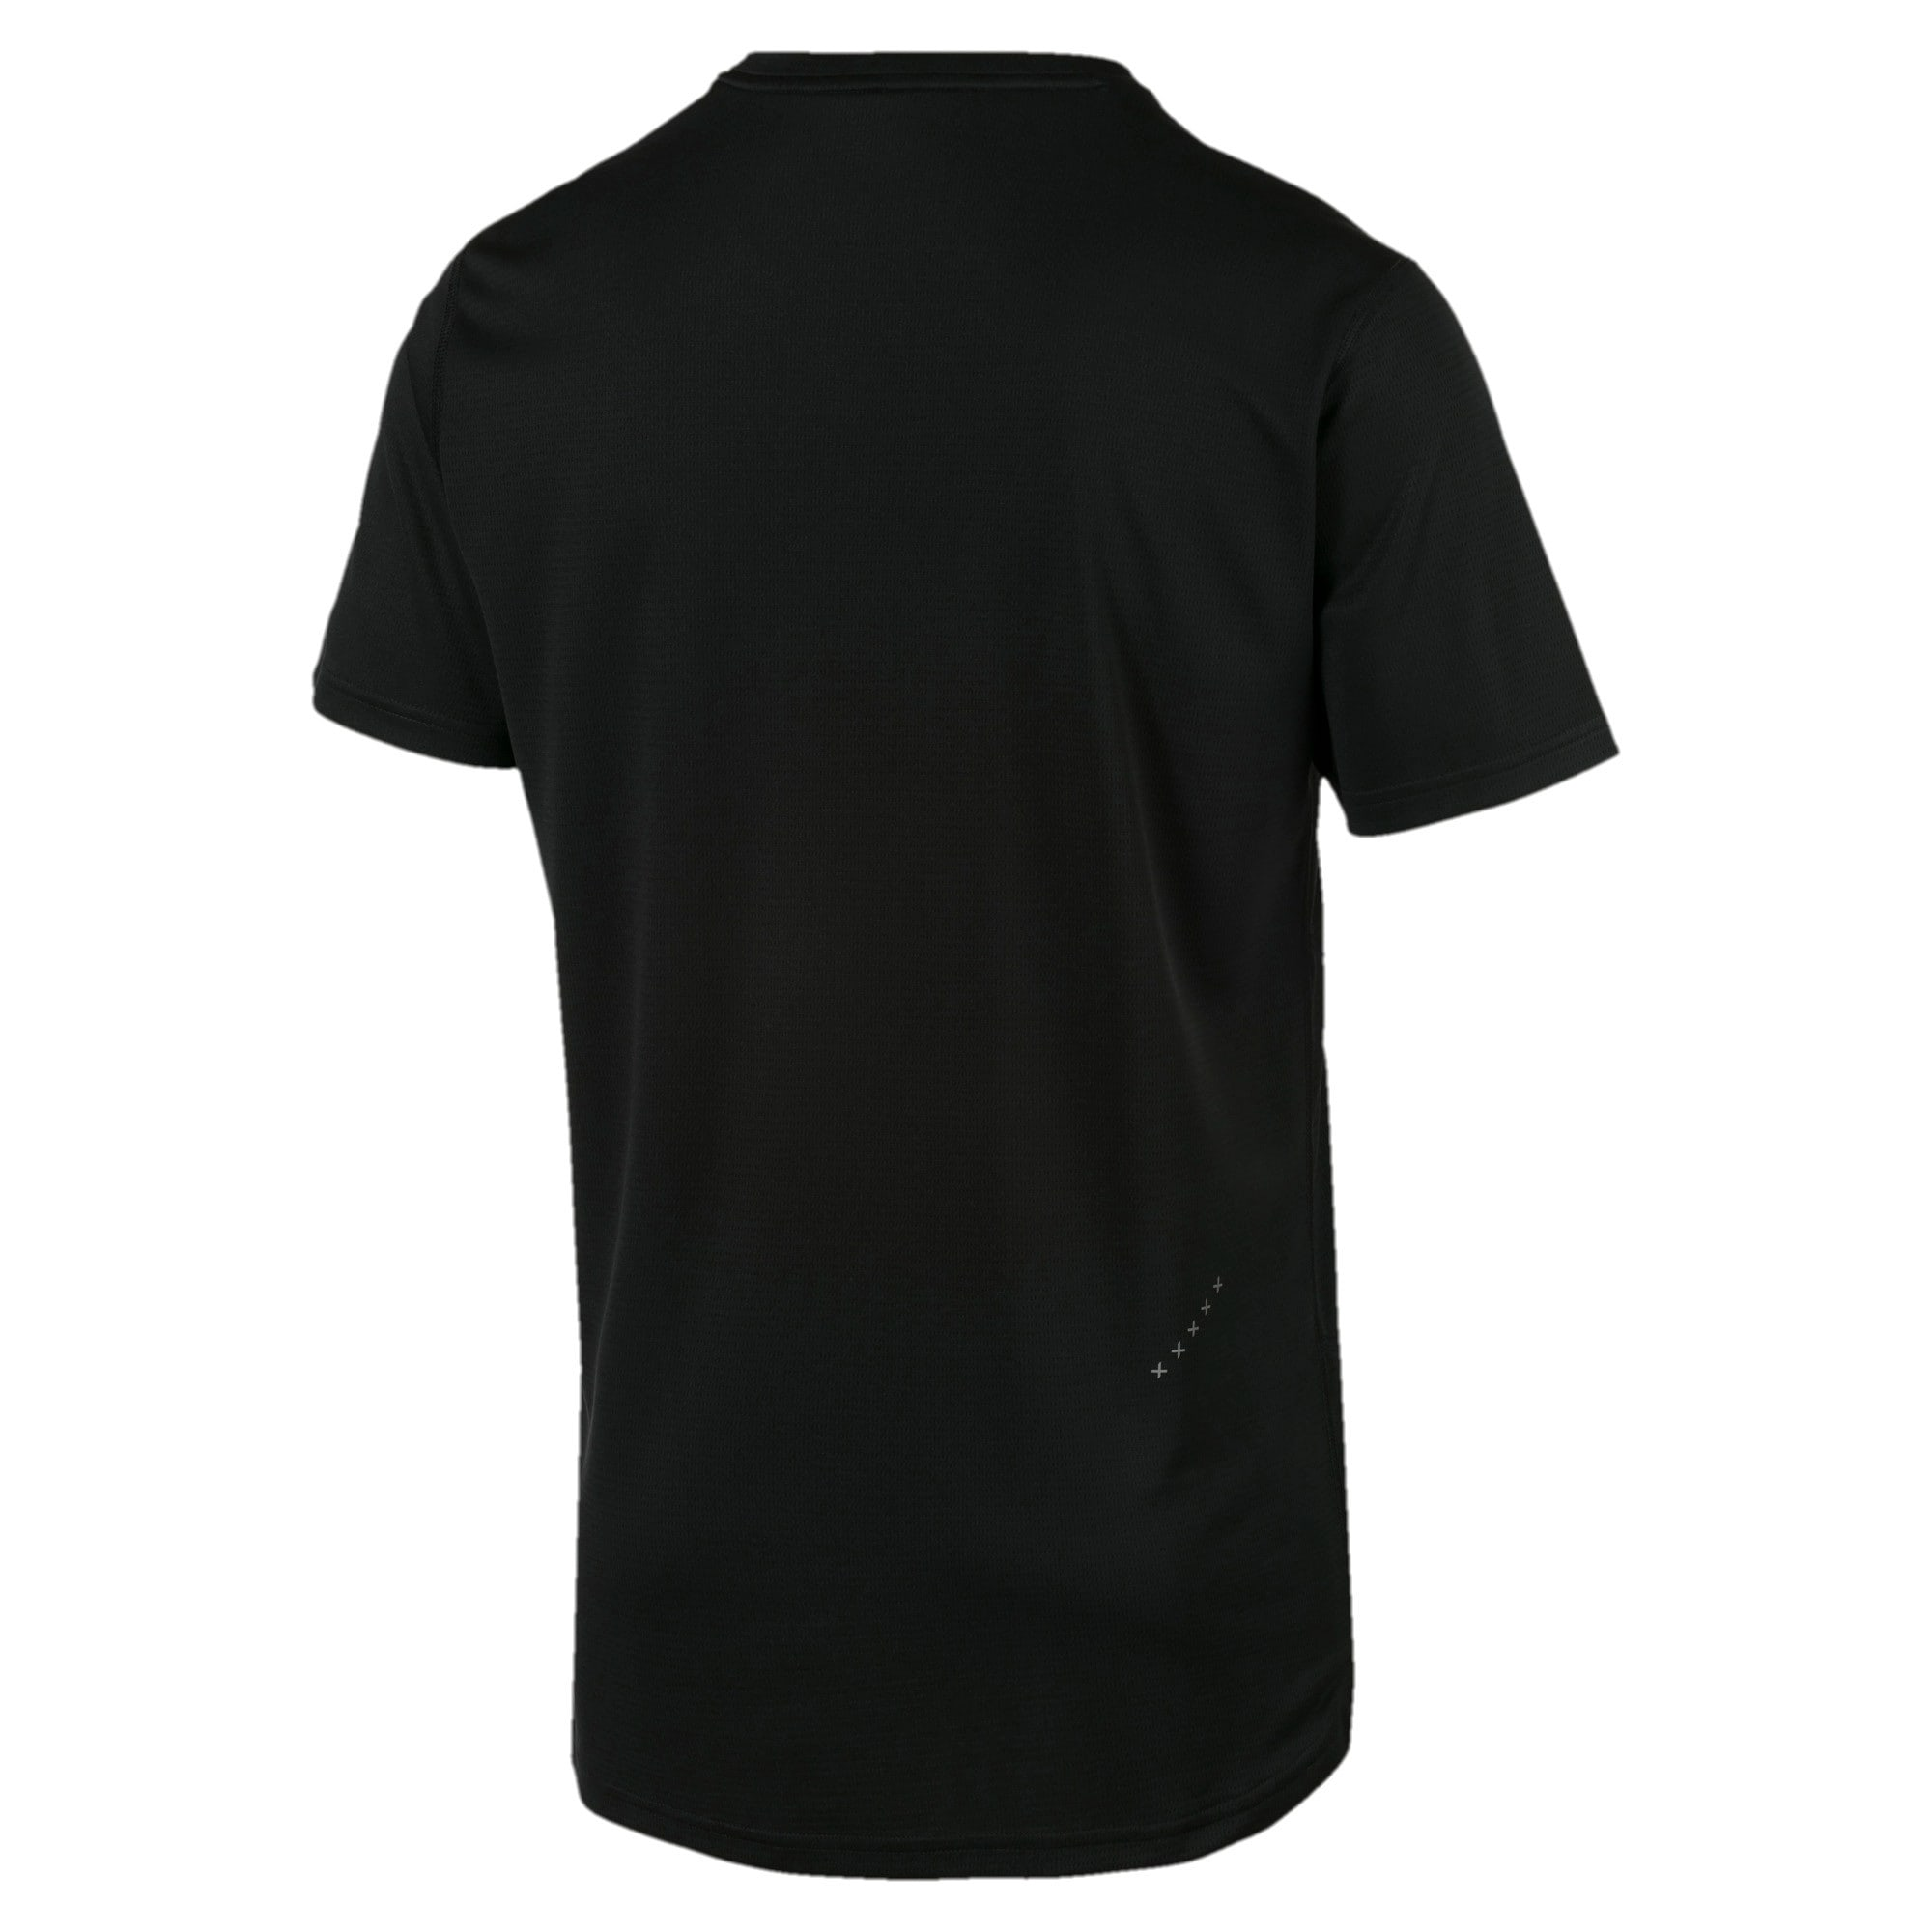 Thumbnail 5 of IGNITE Men's Running T-Shirt, Puma Black, medium